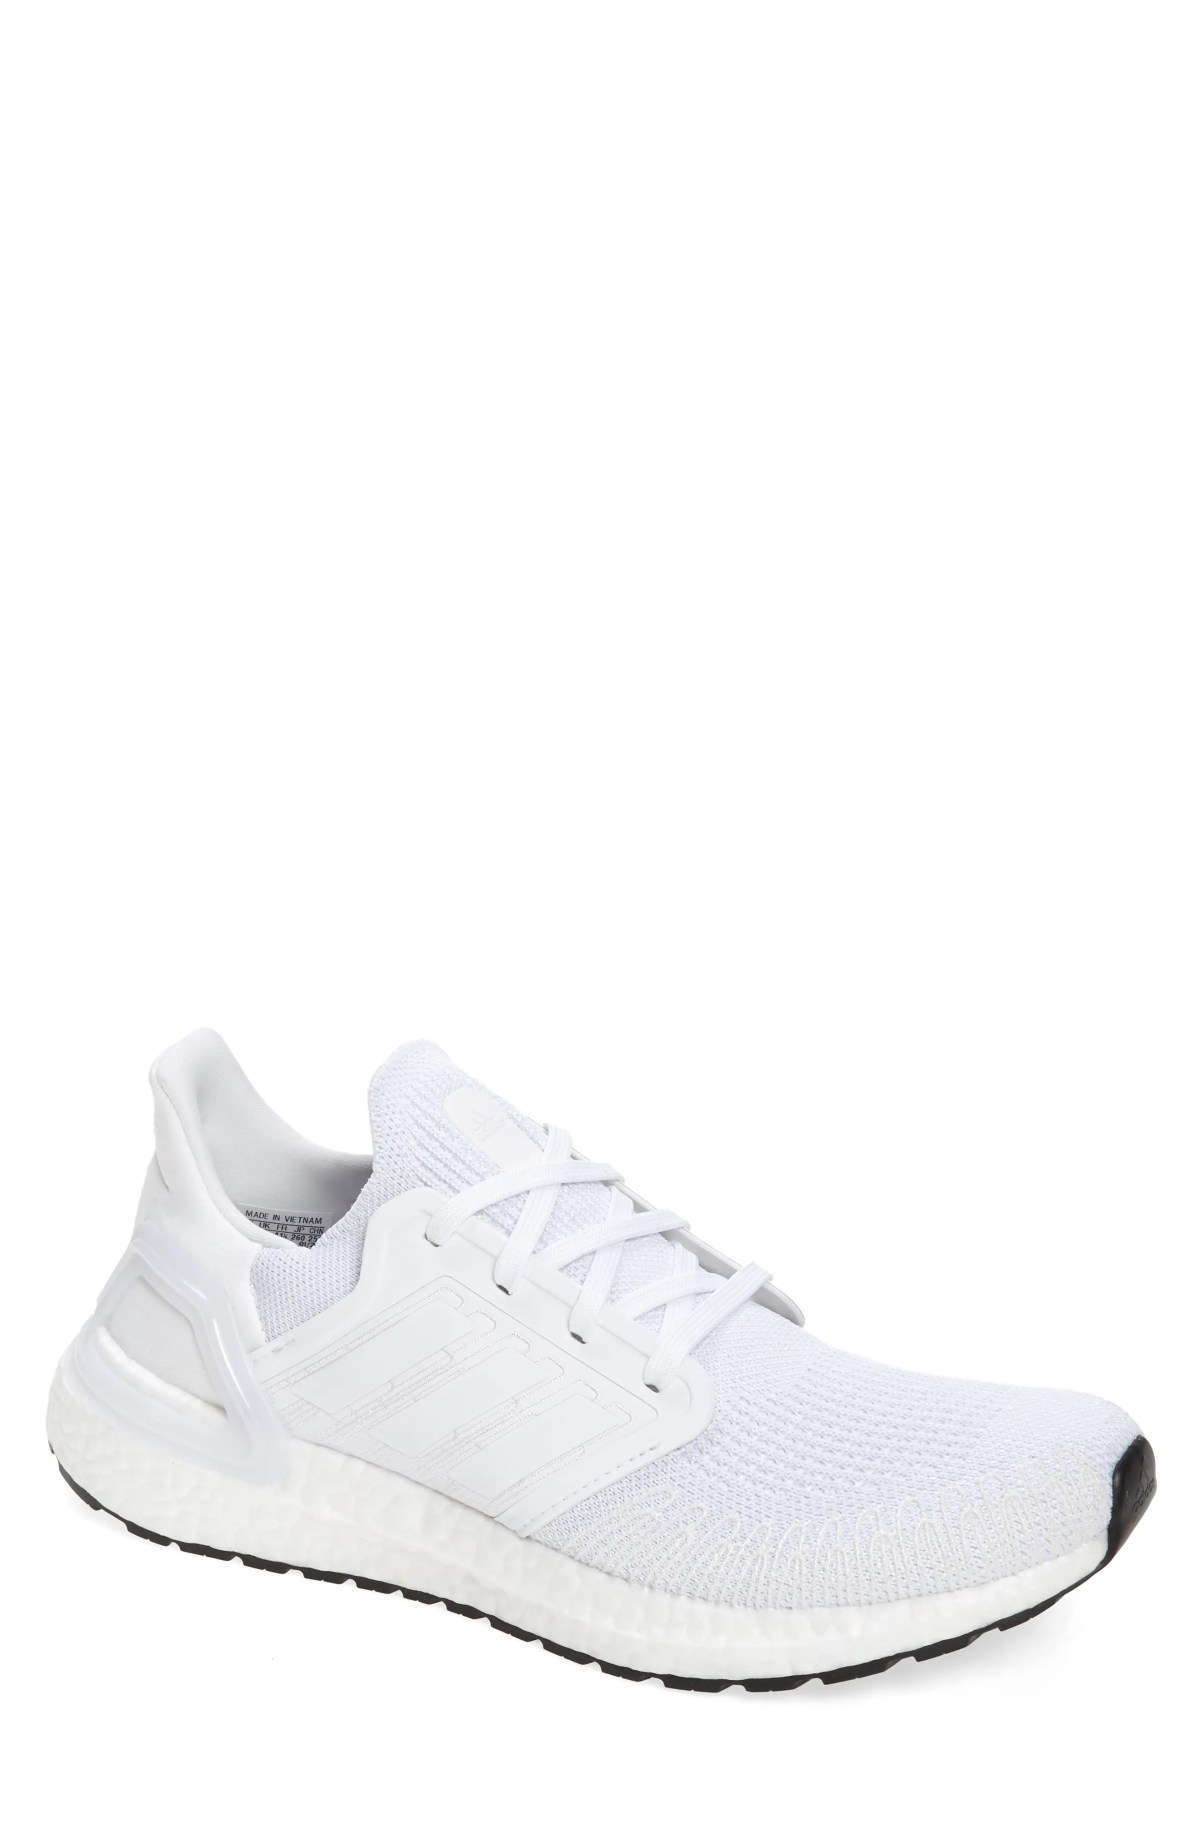 ADIDAS UltraBoost 20 Running Shoe, Main, color, WHITE/ GREY THREE F17/ BLACK